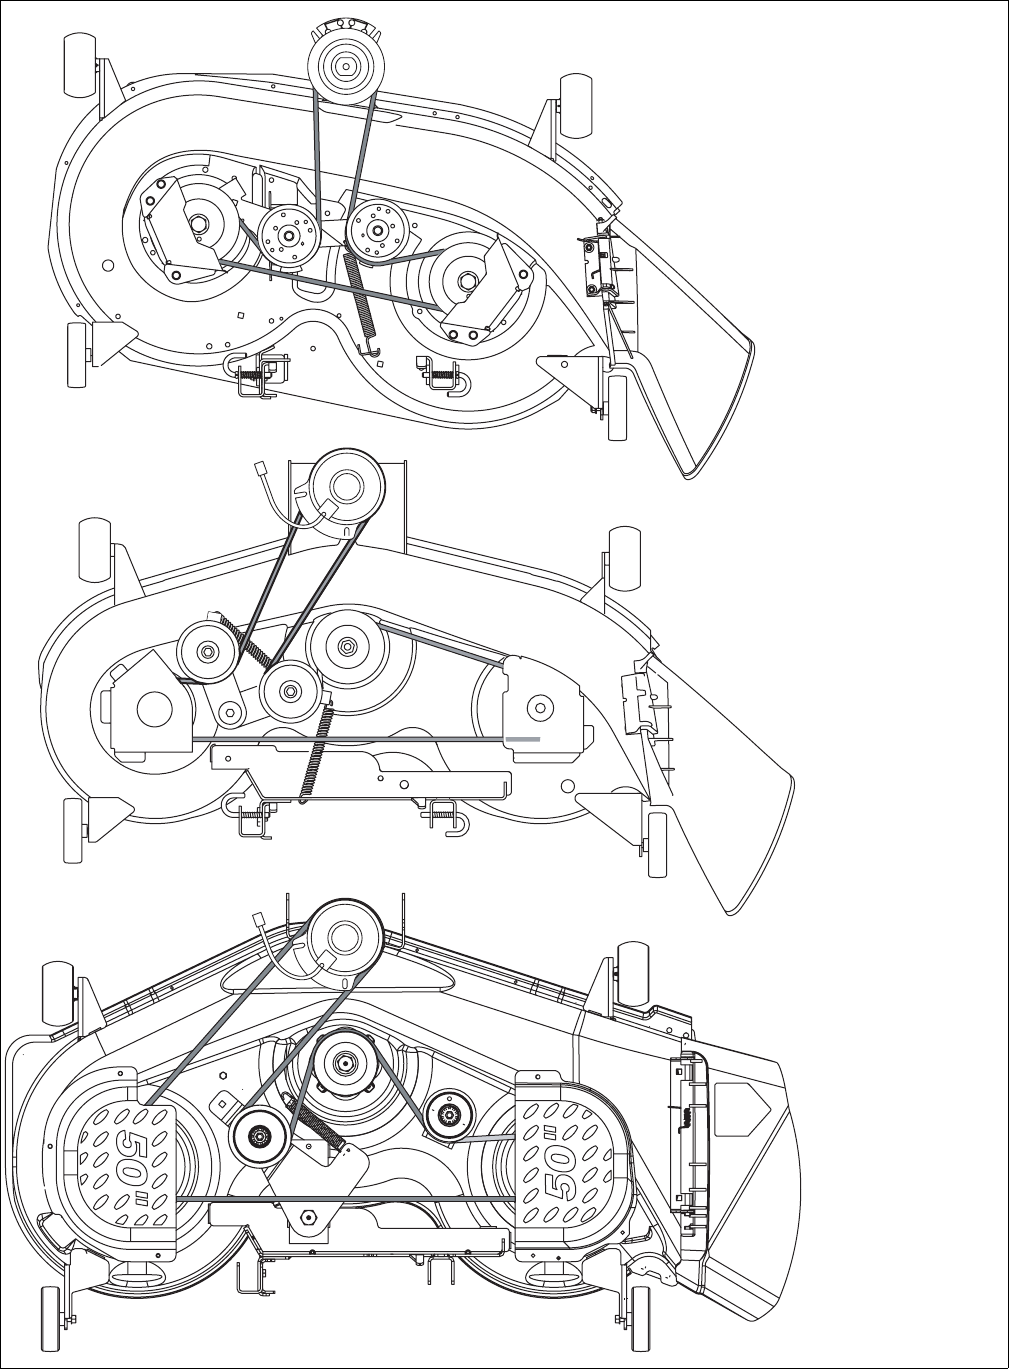 Cub Cadet Lt1042 Deck Belt Diagram Manual Guide